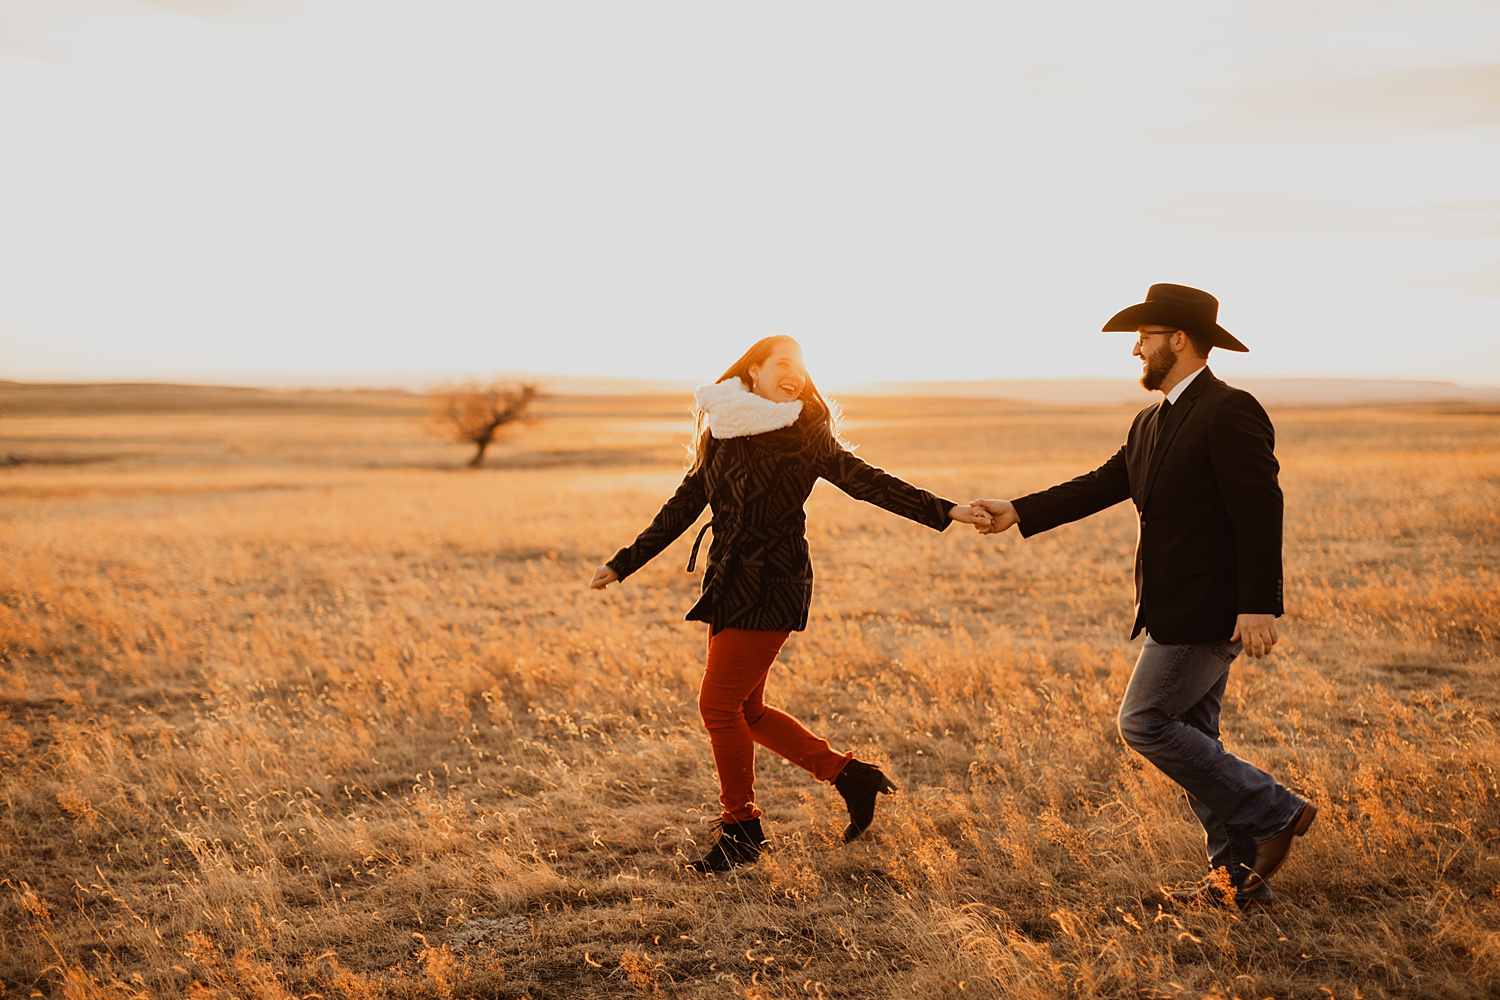 Western Engagement Pictures | Wyoming Cattle Ranch | Family Ranch Pictures | Golden Hour Pictures | Western Engagement Outfits | Cassie Madden Photography